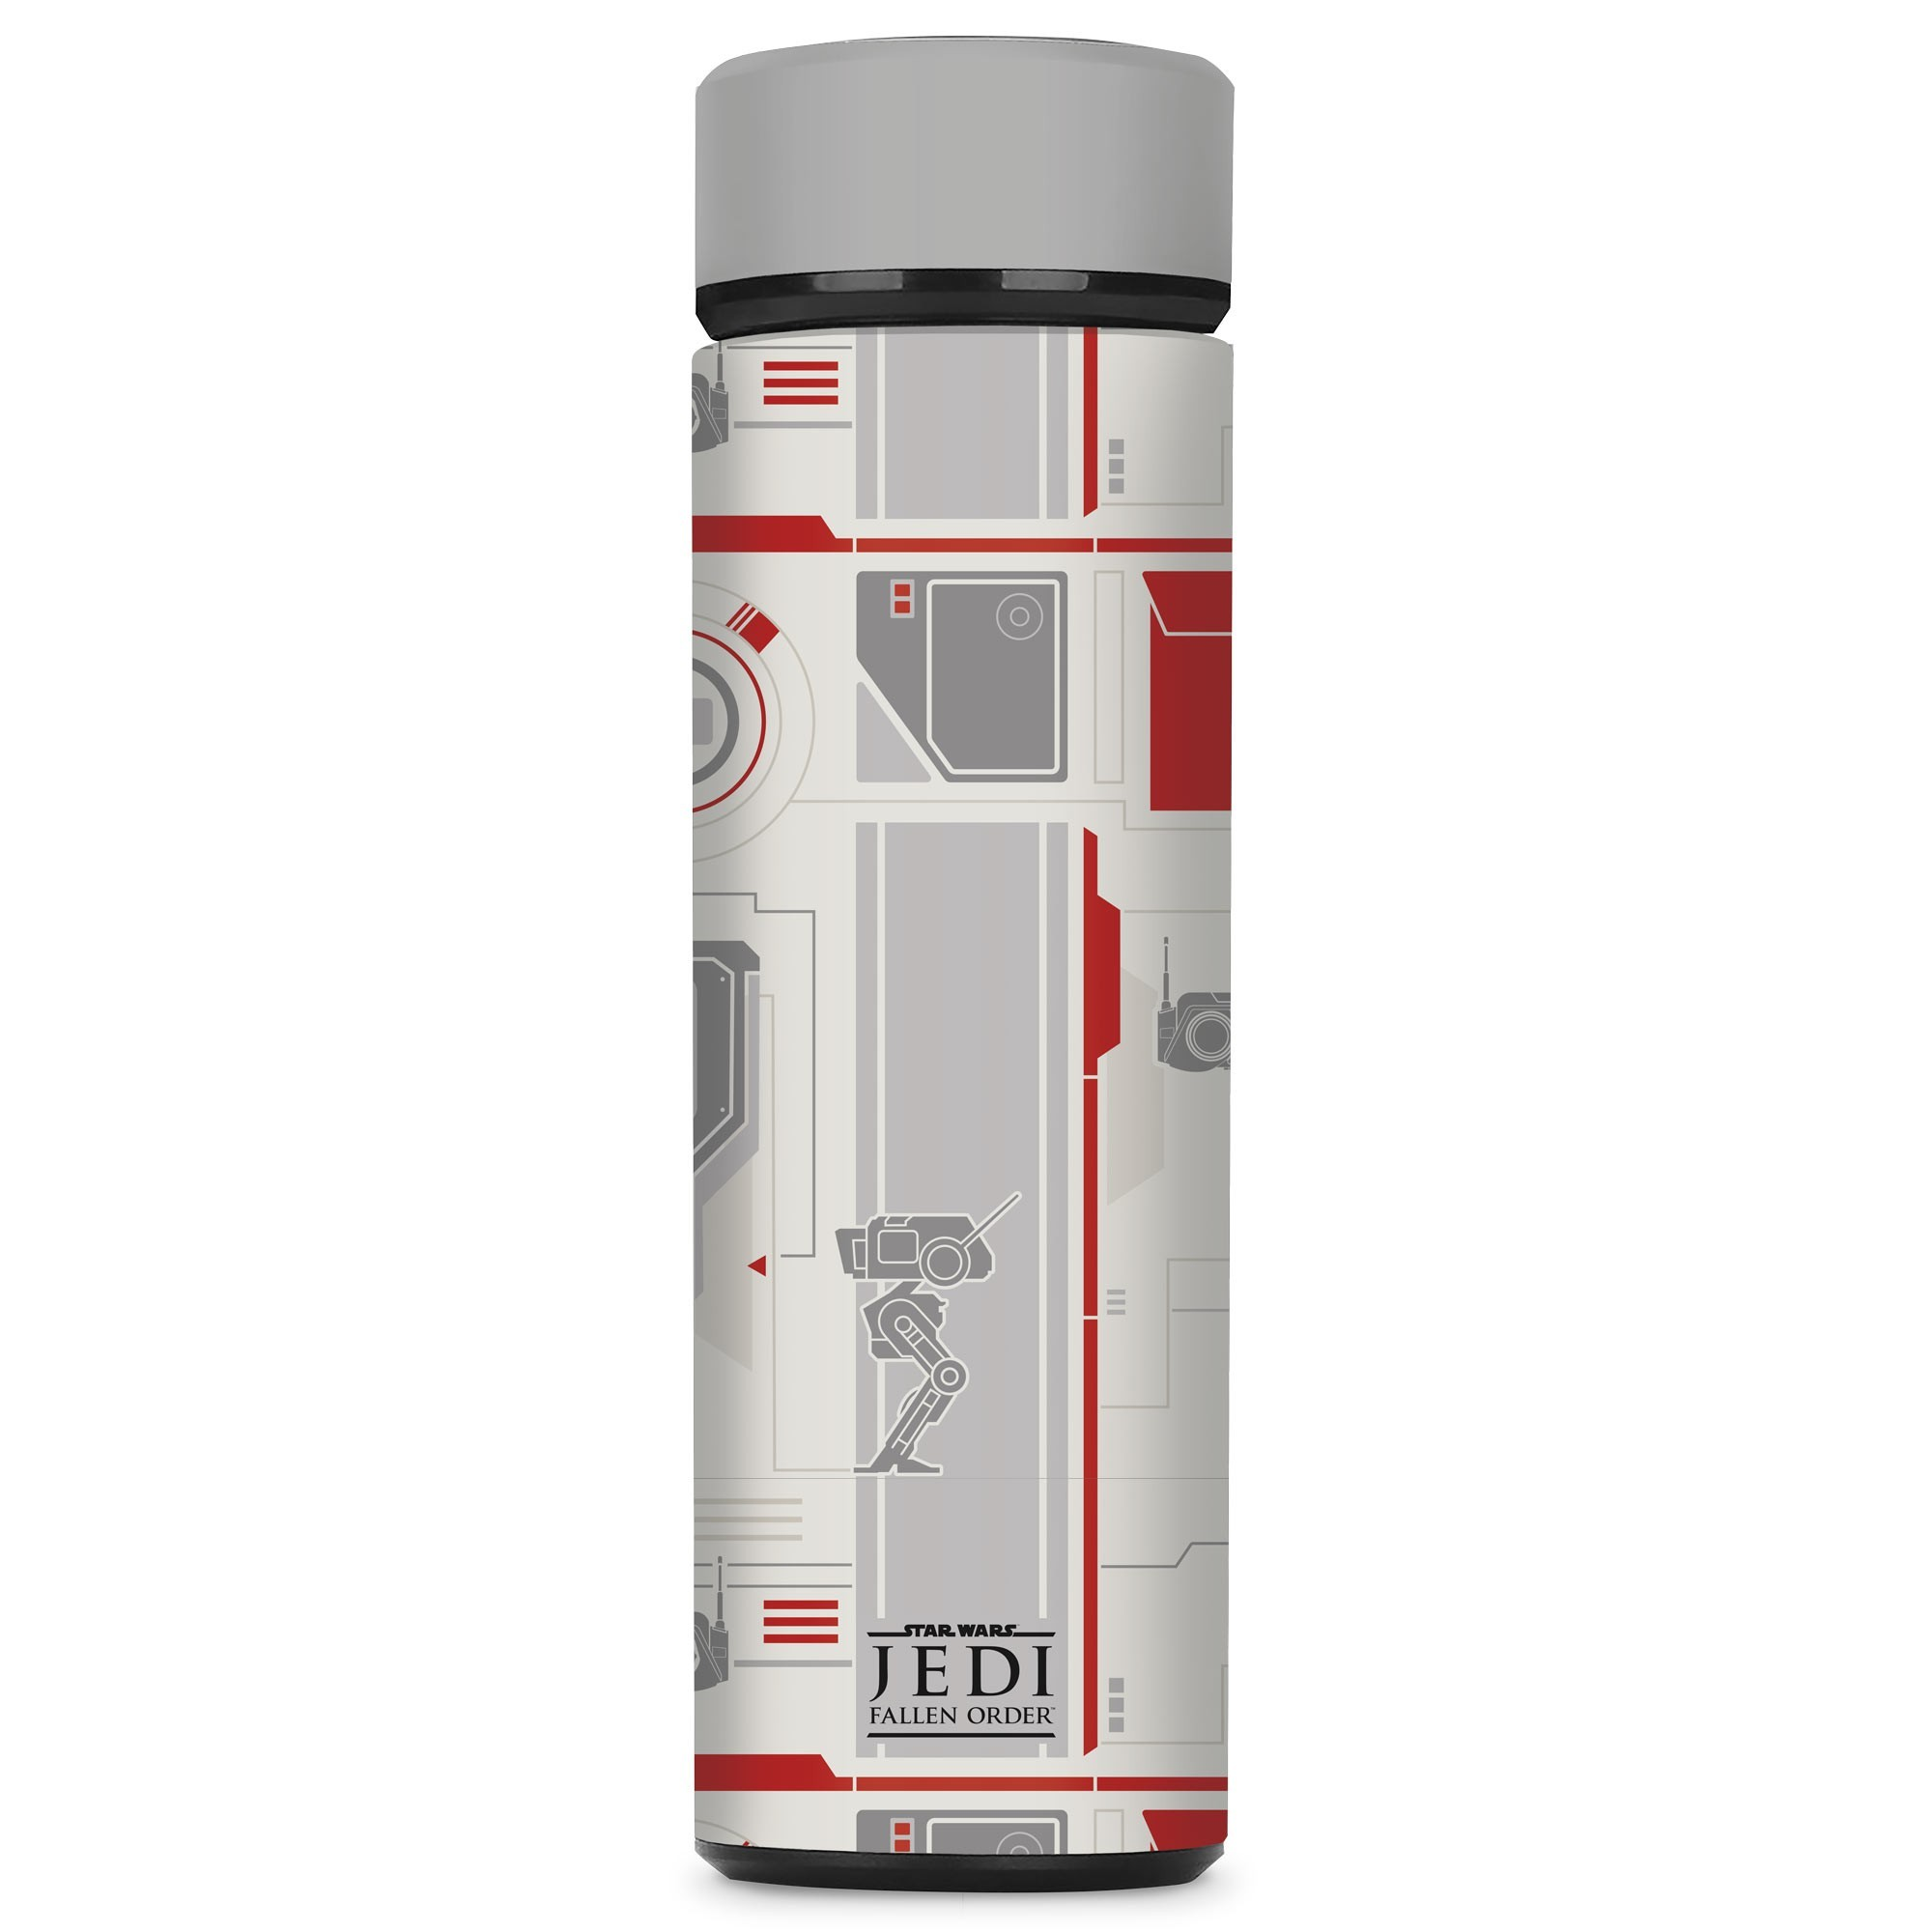 Star Wars Water Bottle with a Jedi Fallen Order Design, Image 1